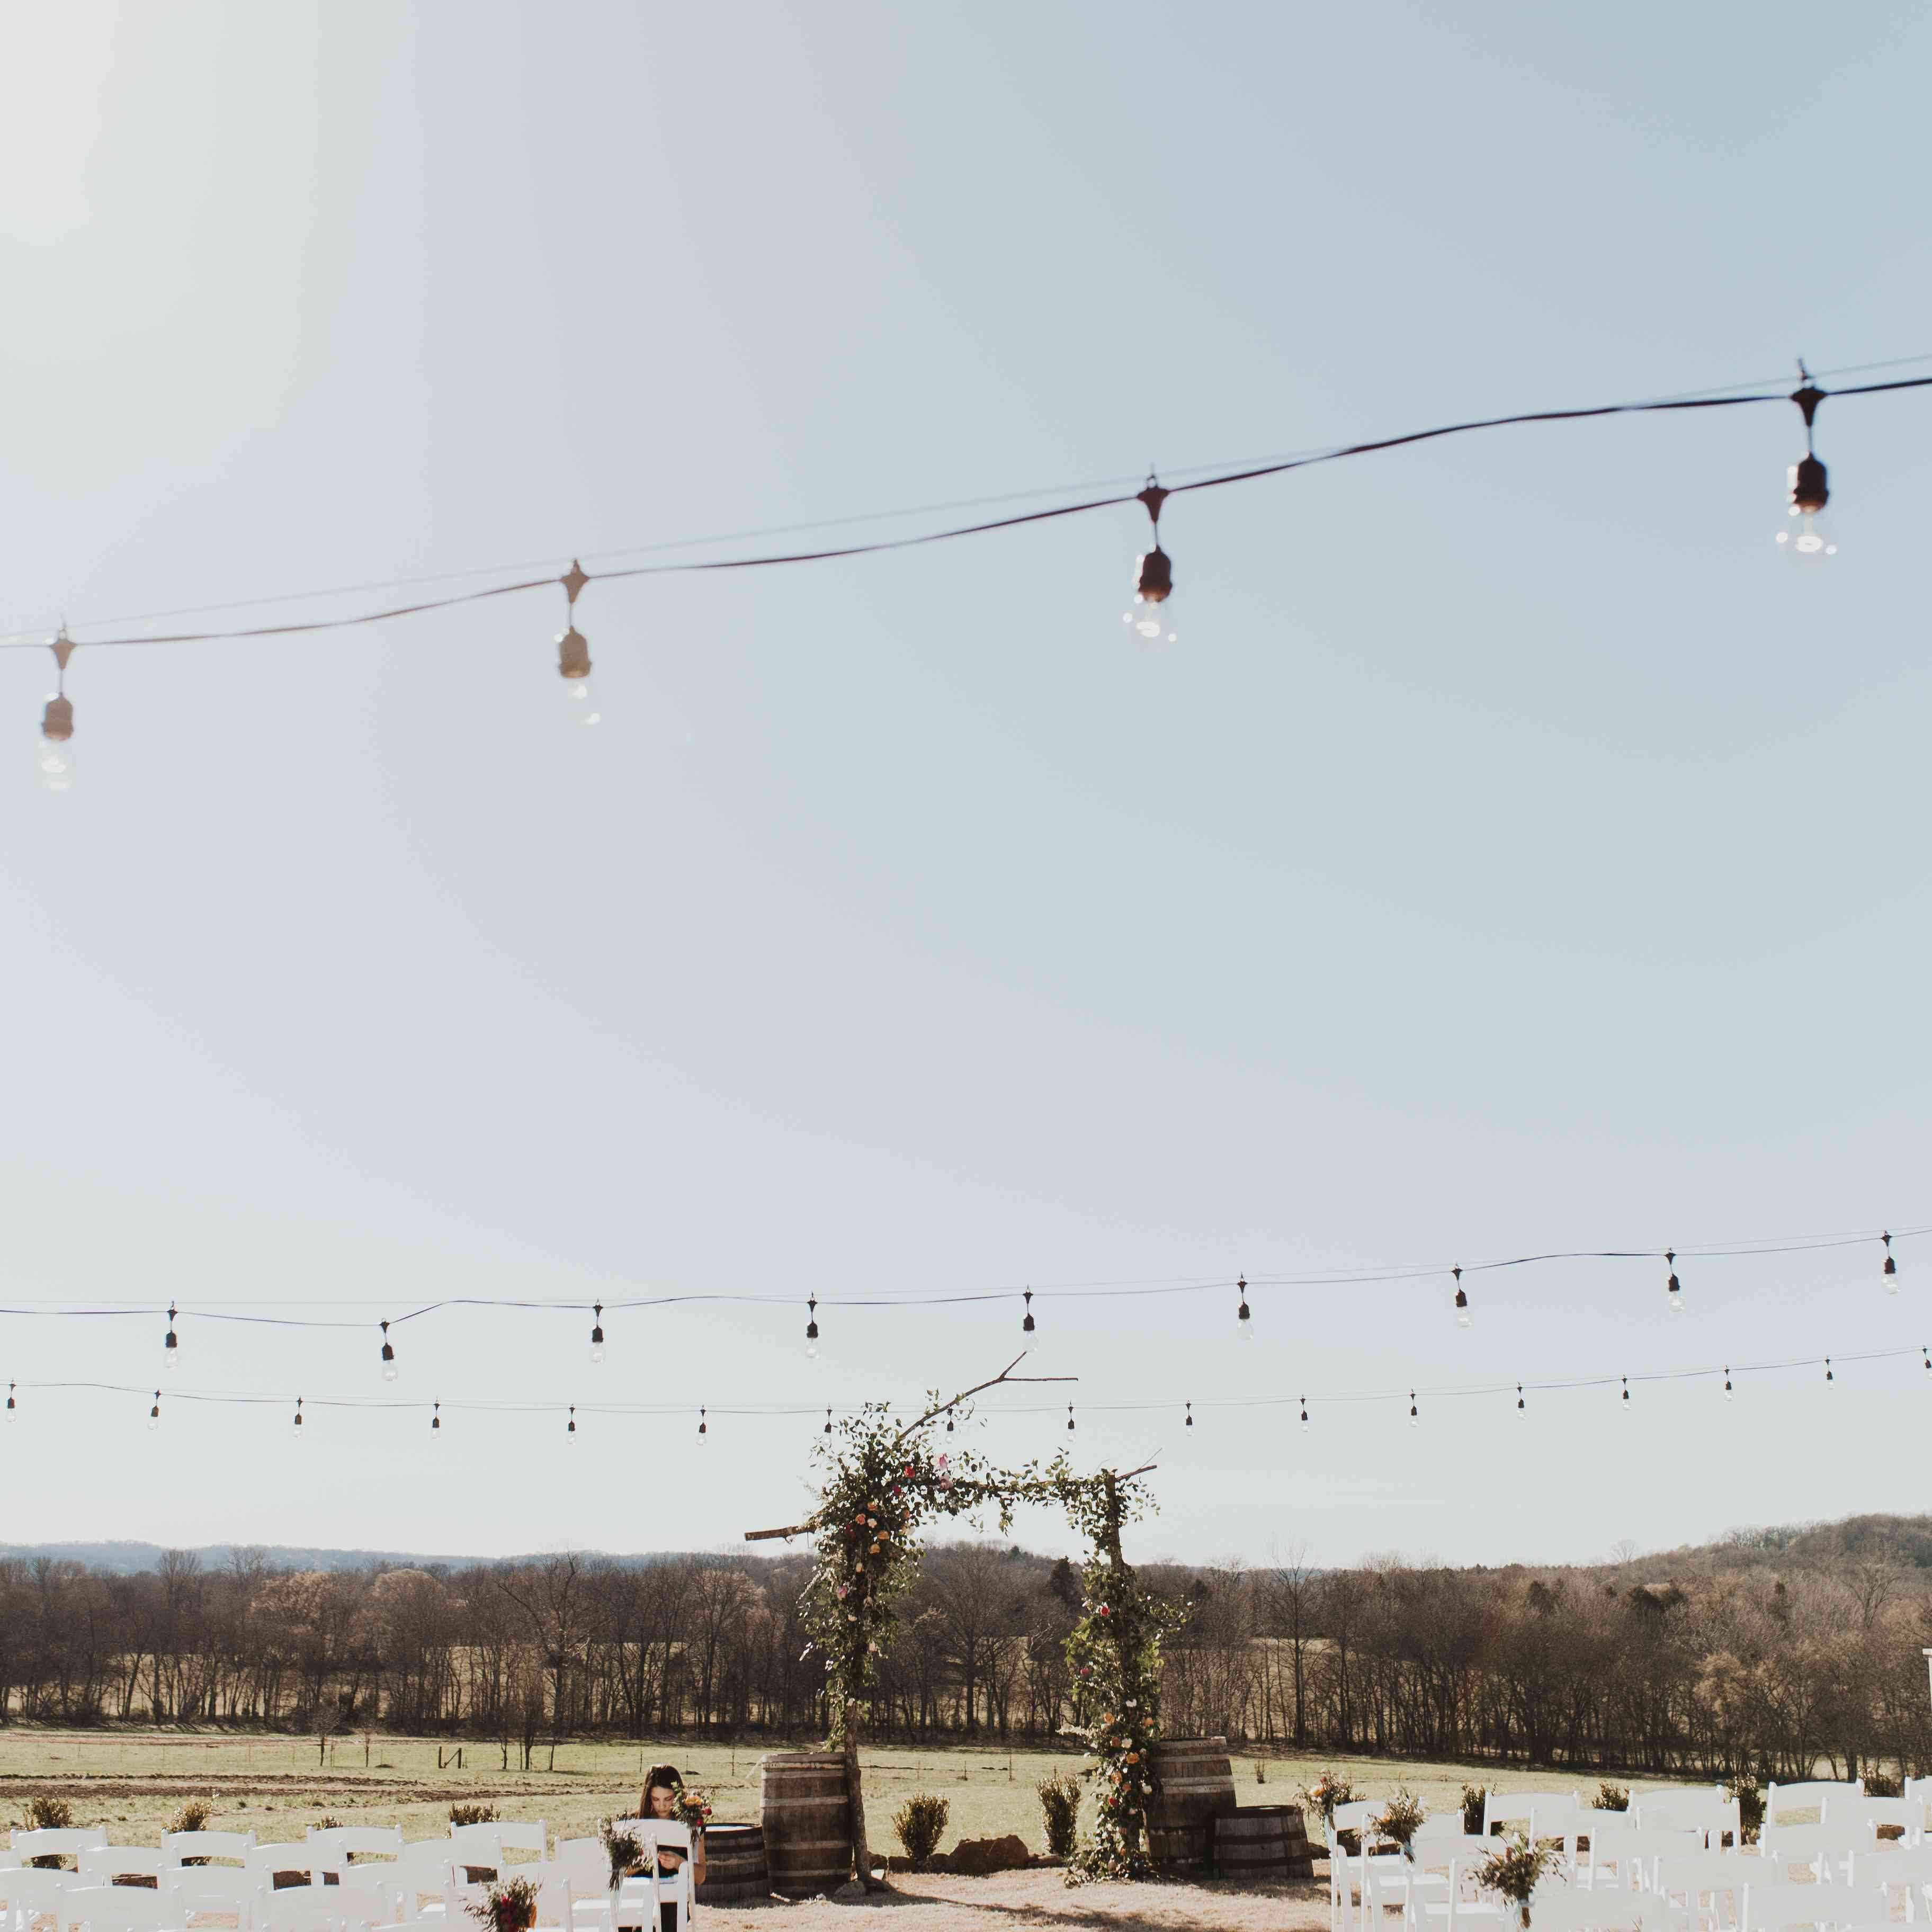 Outdoor ceremony with string lights over aisle and branch arch with barrels on each side